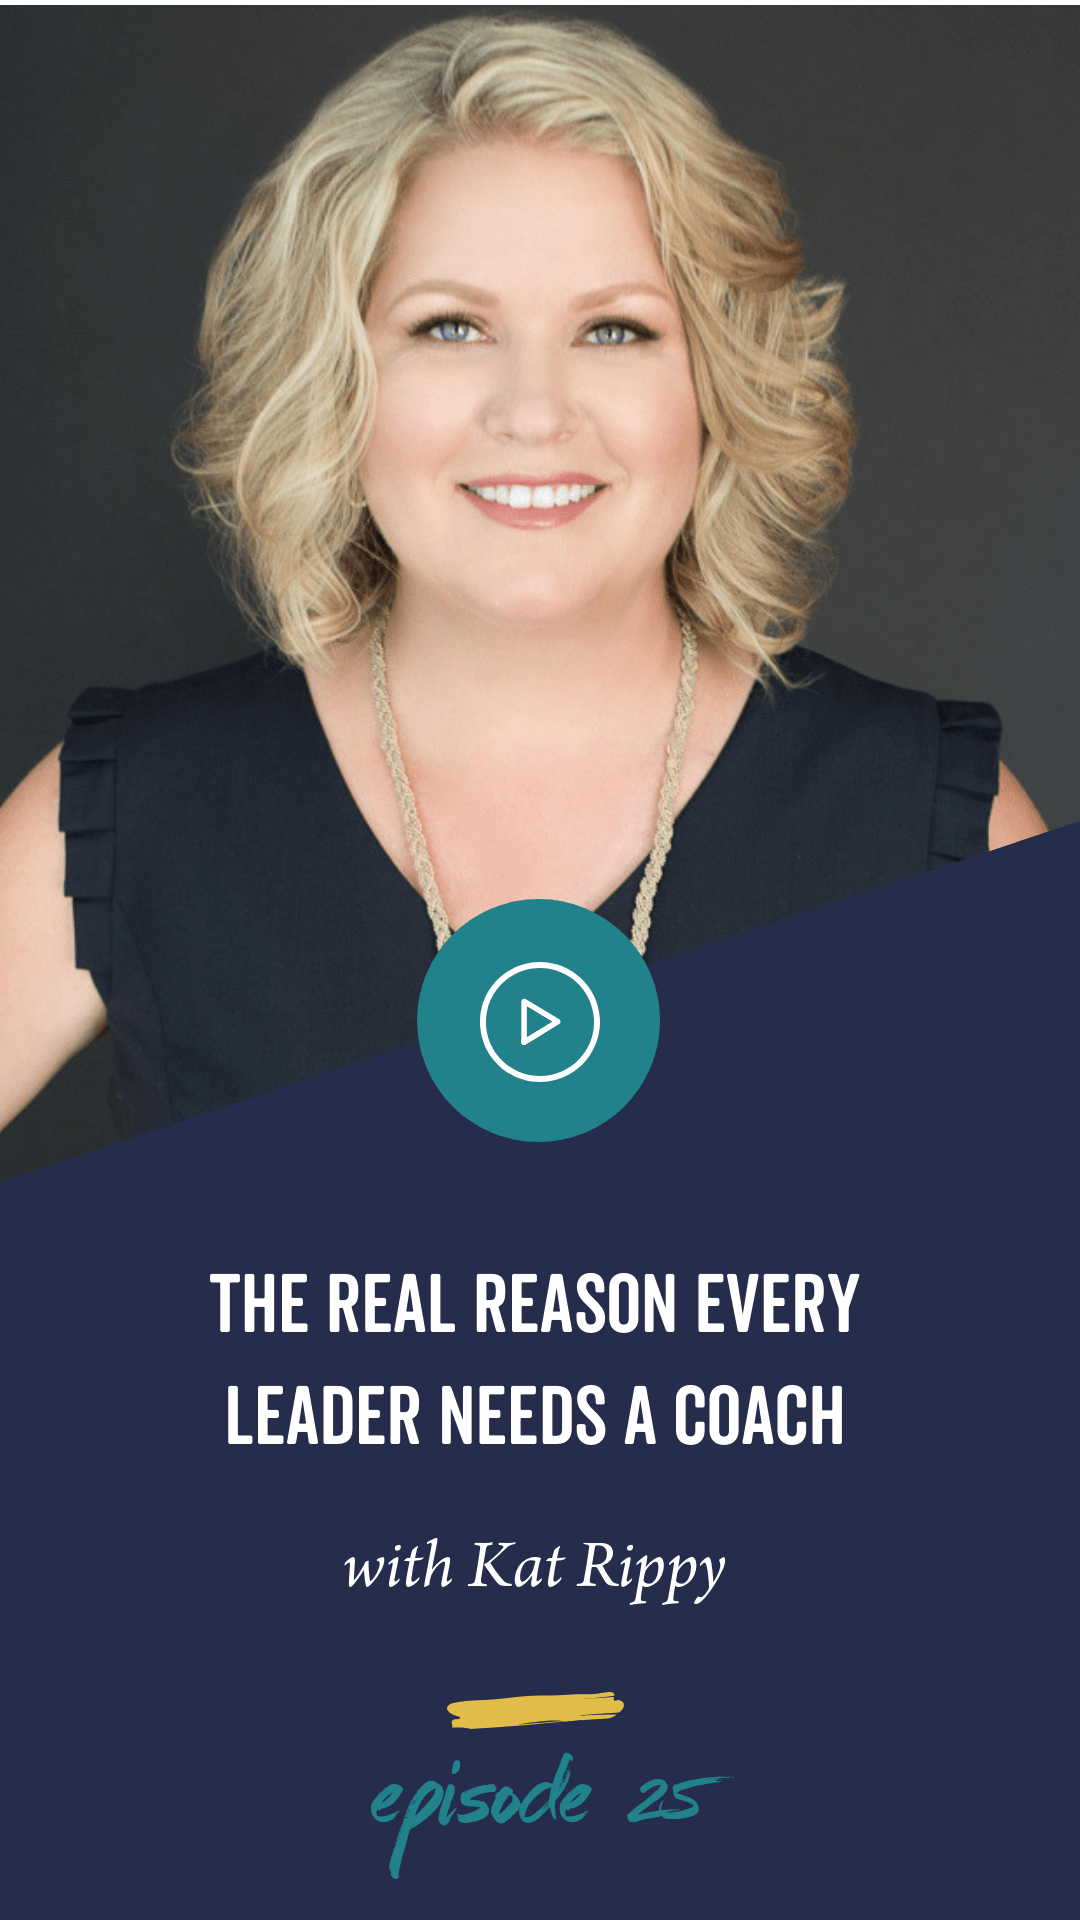 Episode 25: The Real Reason Every Leader Needs a Coach